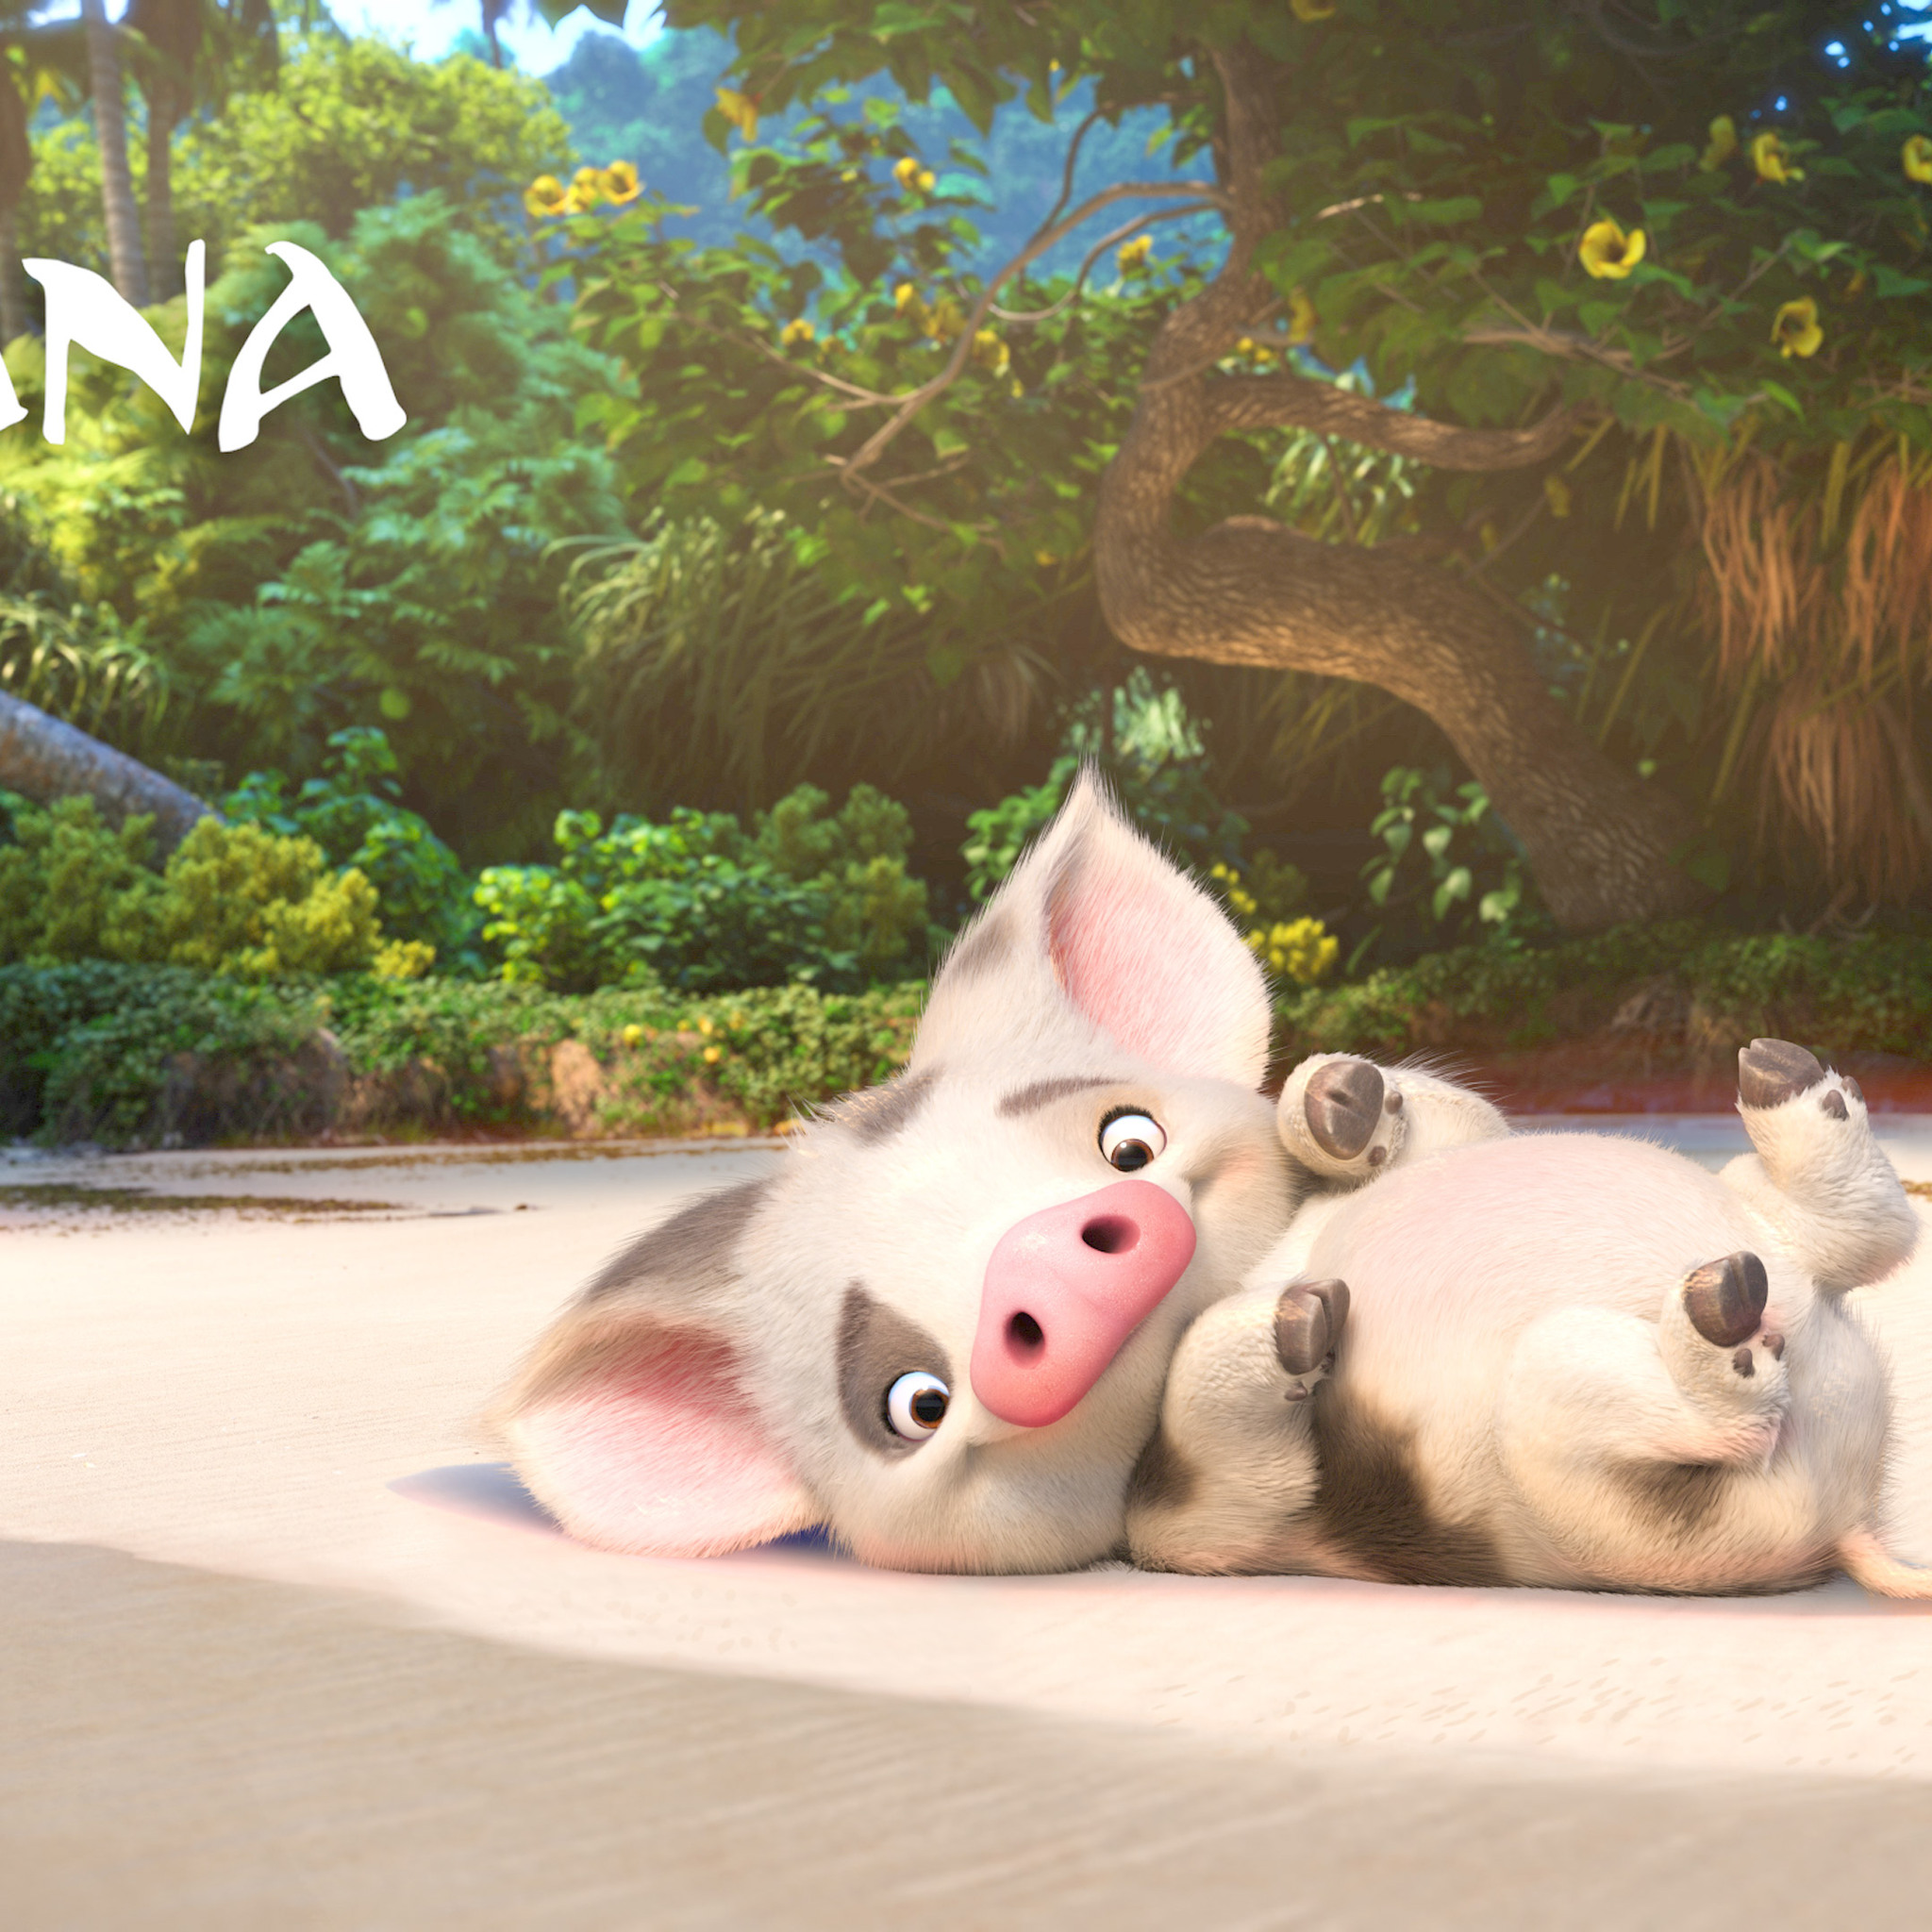 2048 ultra funny animals - Download Pua Moana 4k Hd 4k Wallpapers In 2048x2048 Screen